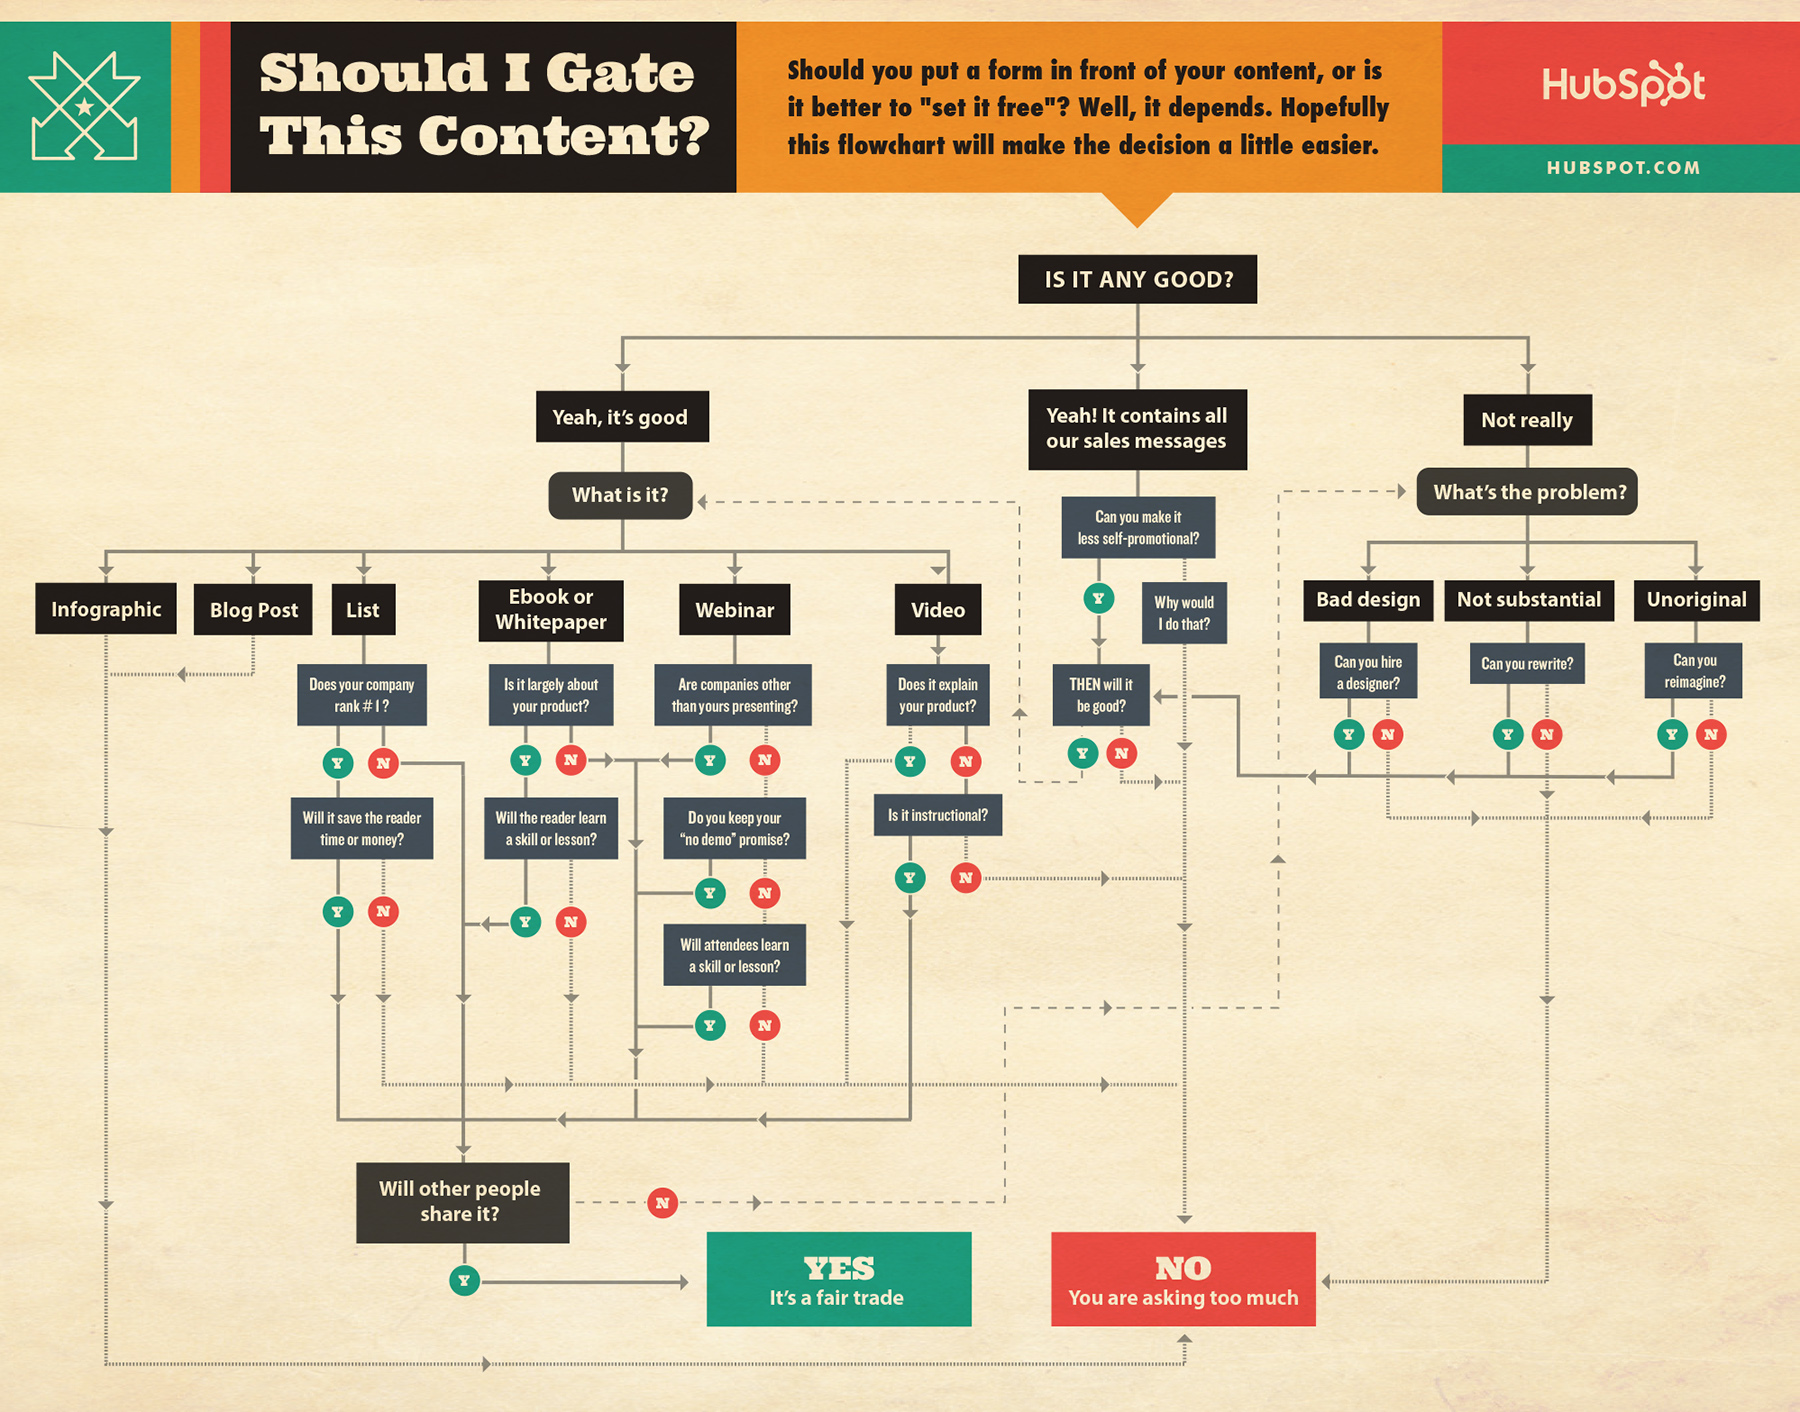 Should-I-Gate-Content-Flowchart-HubSpot-1